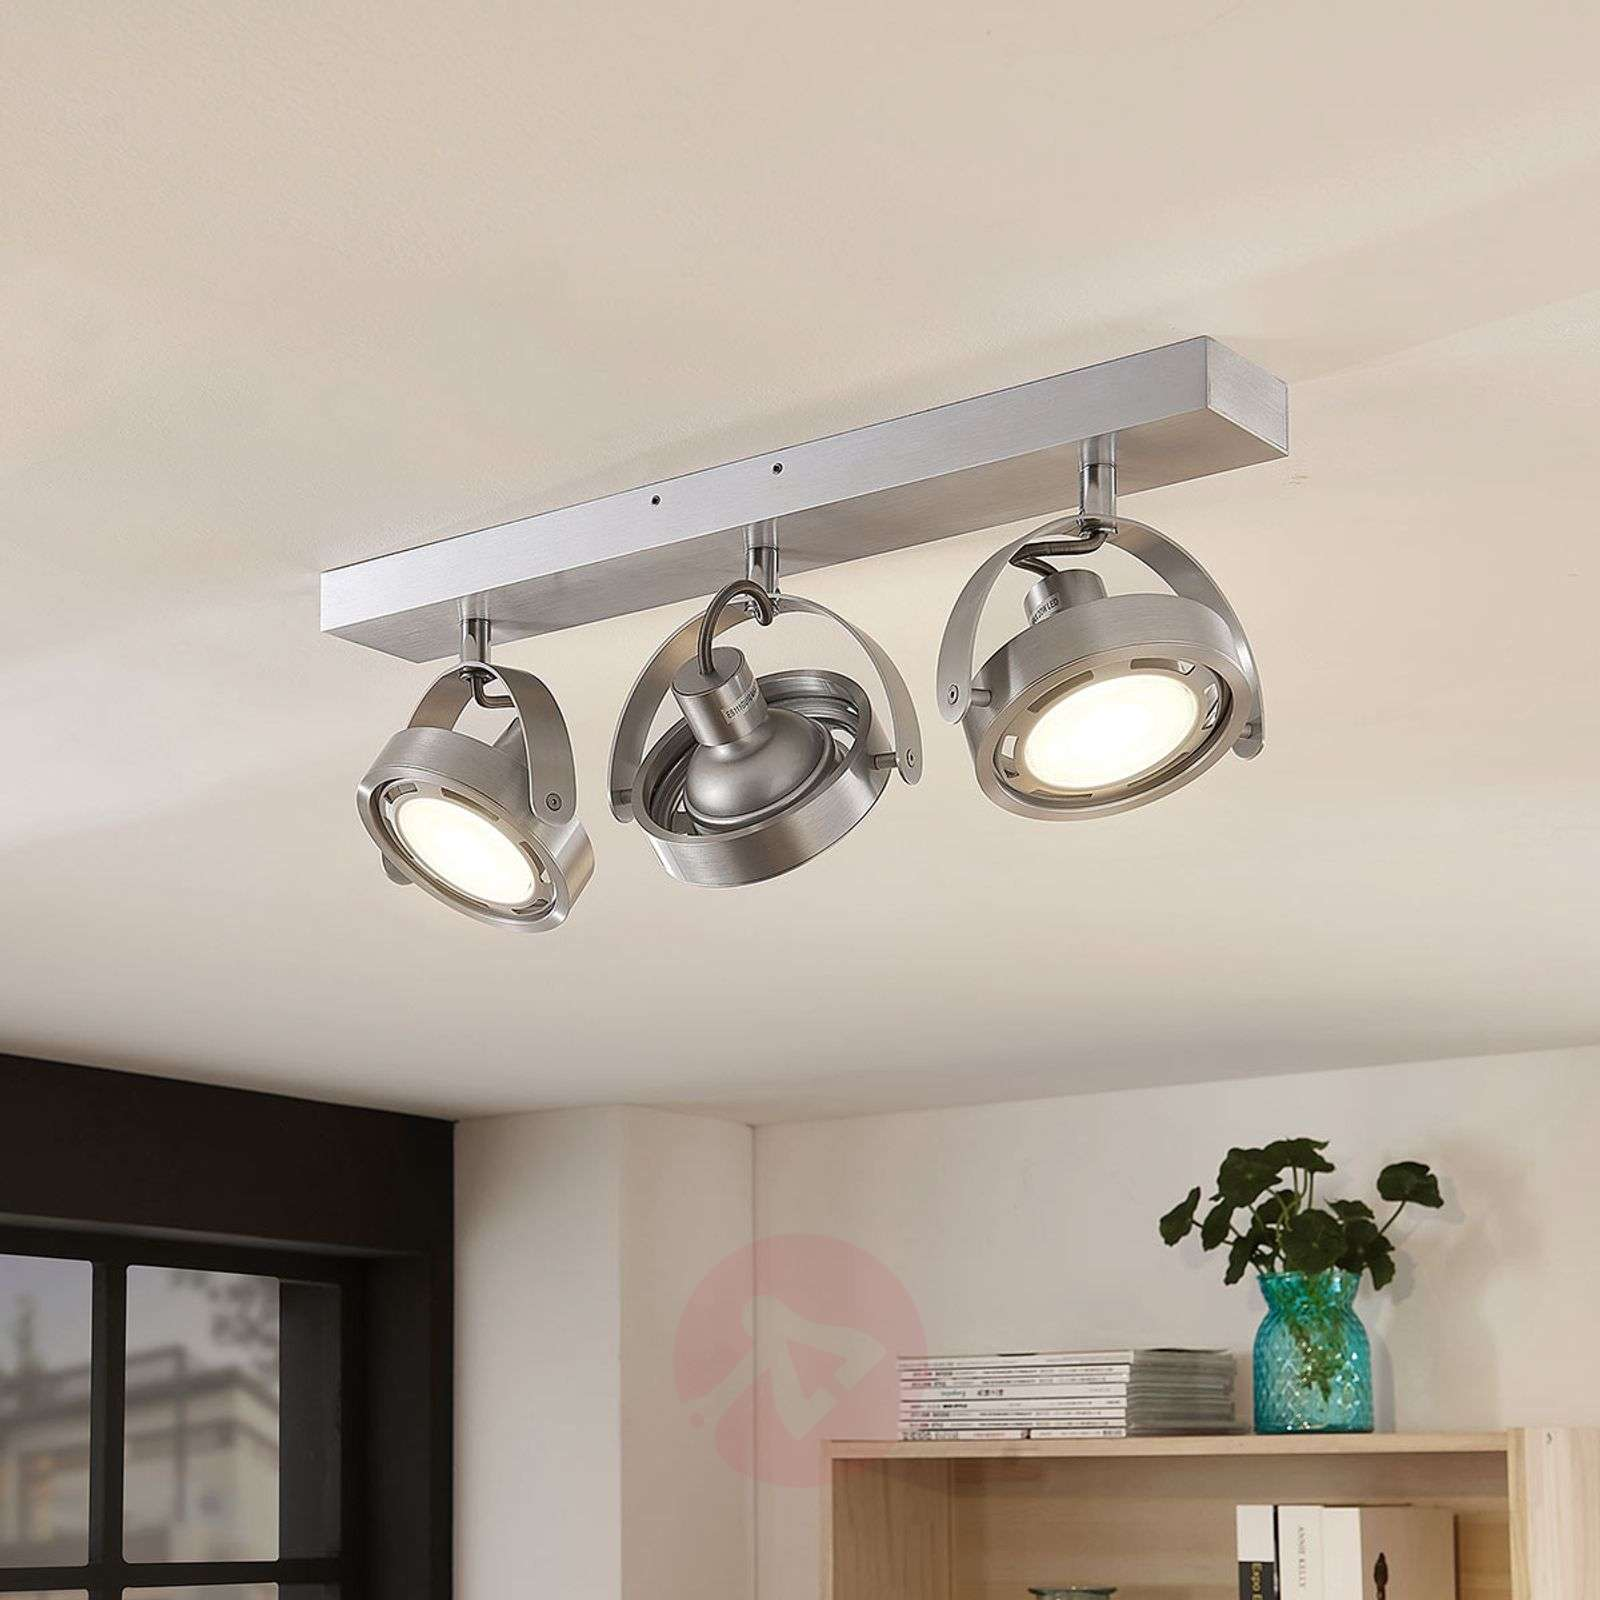 Faretto LED Munin dimmerabile, alluminio, 3 luce-9621880-02